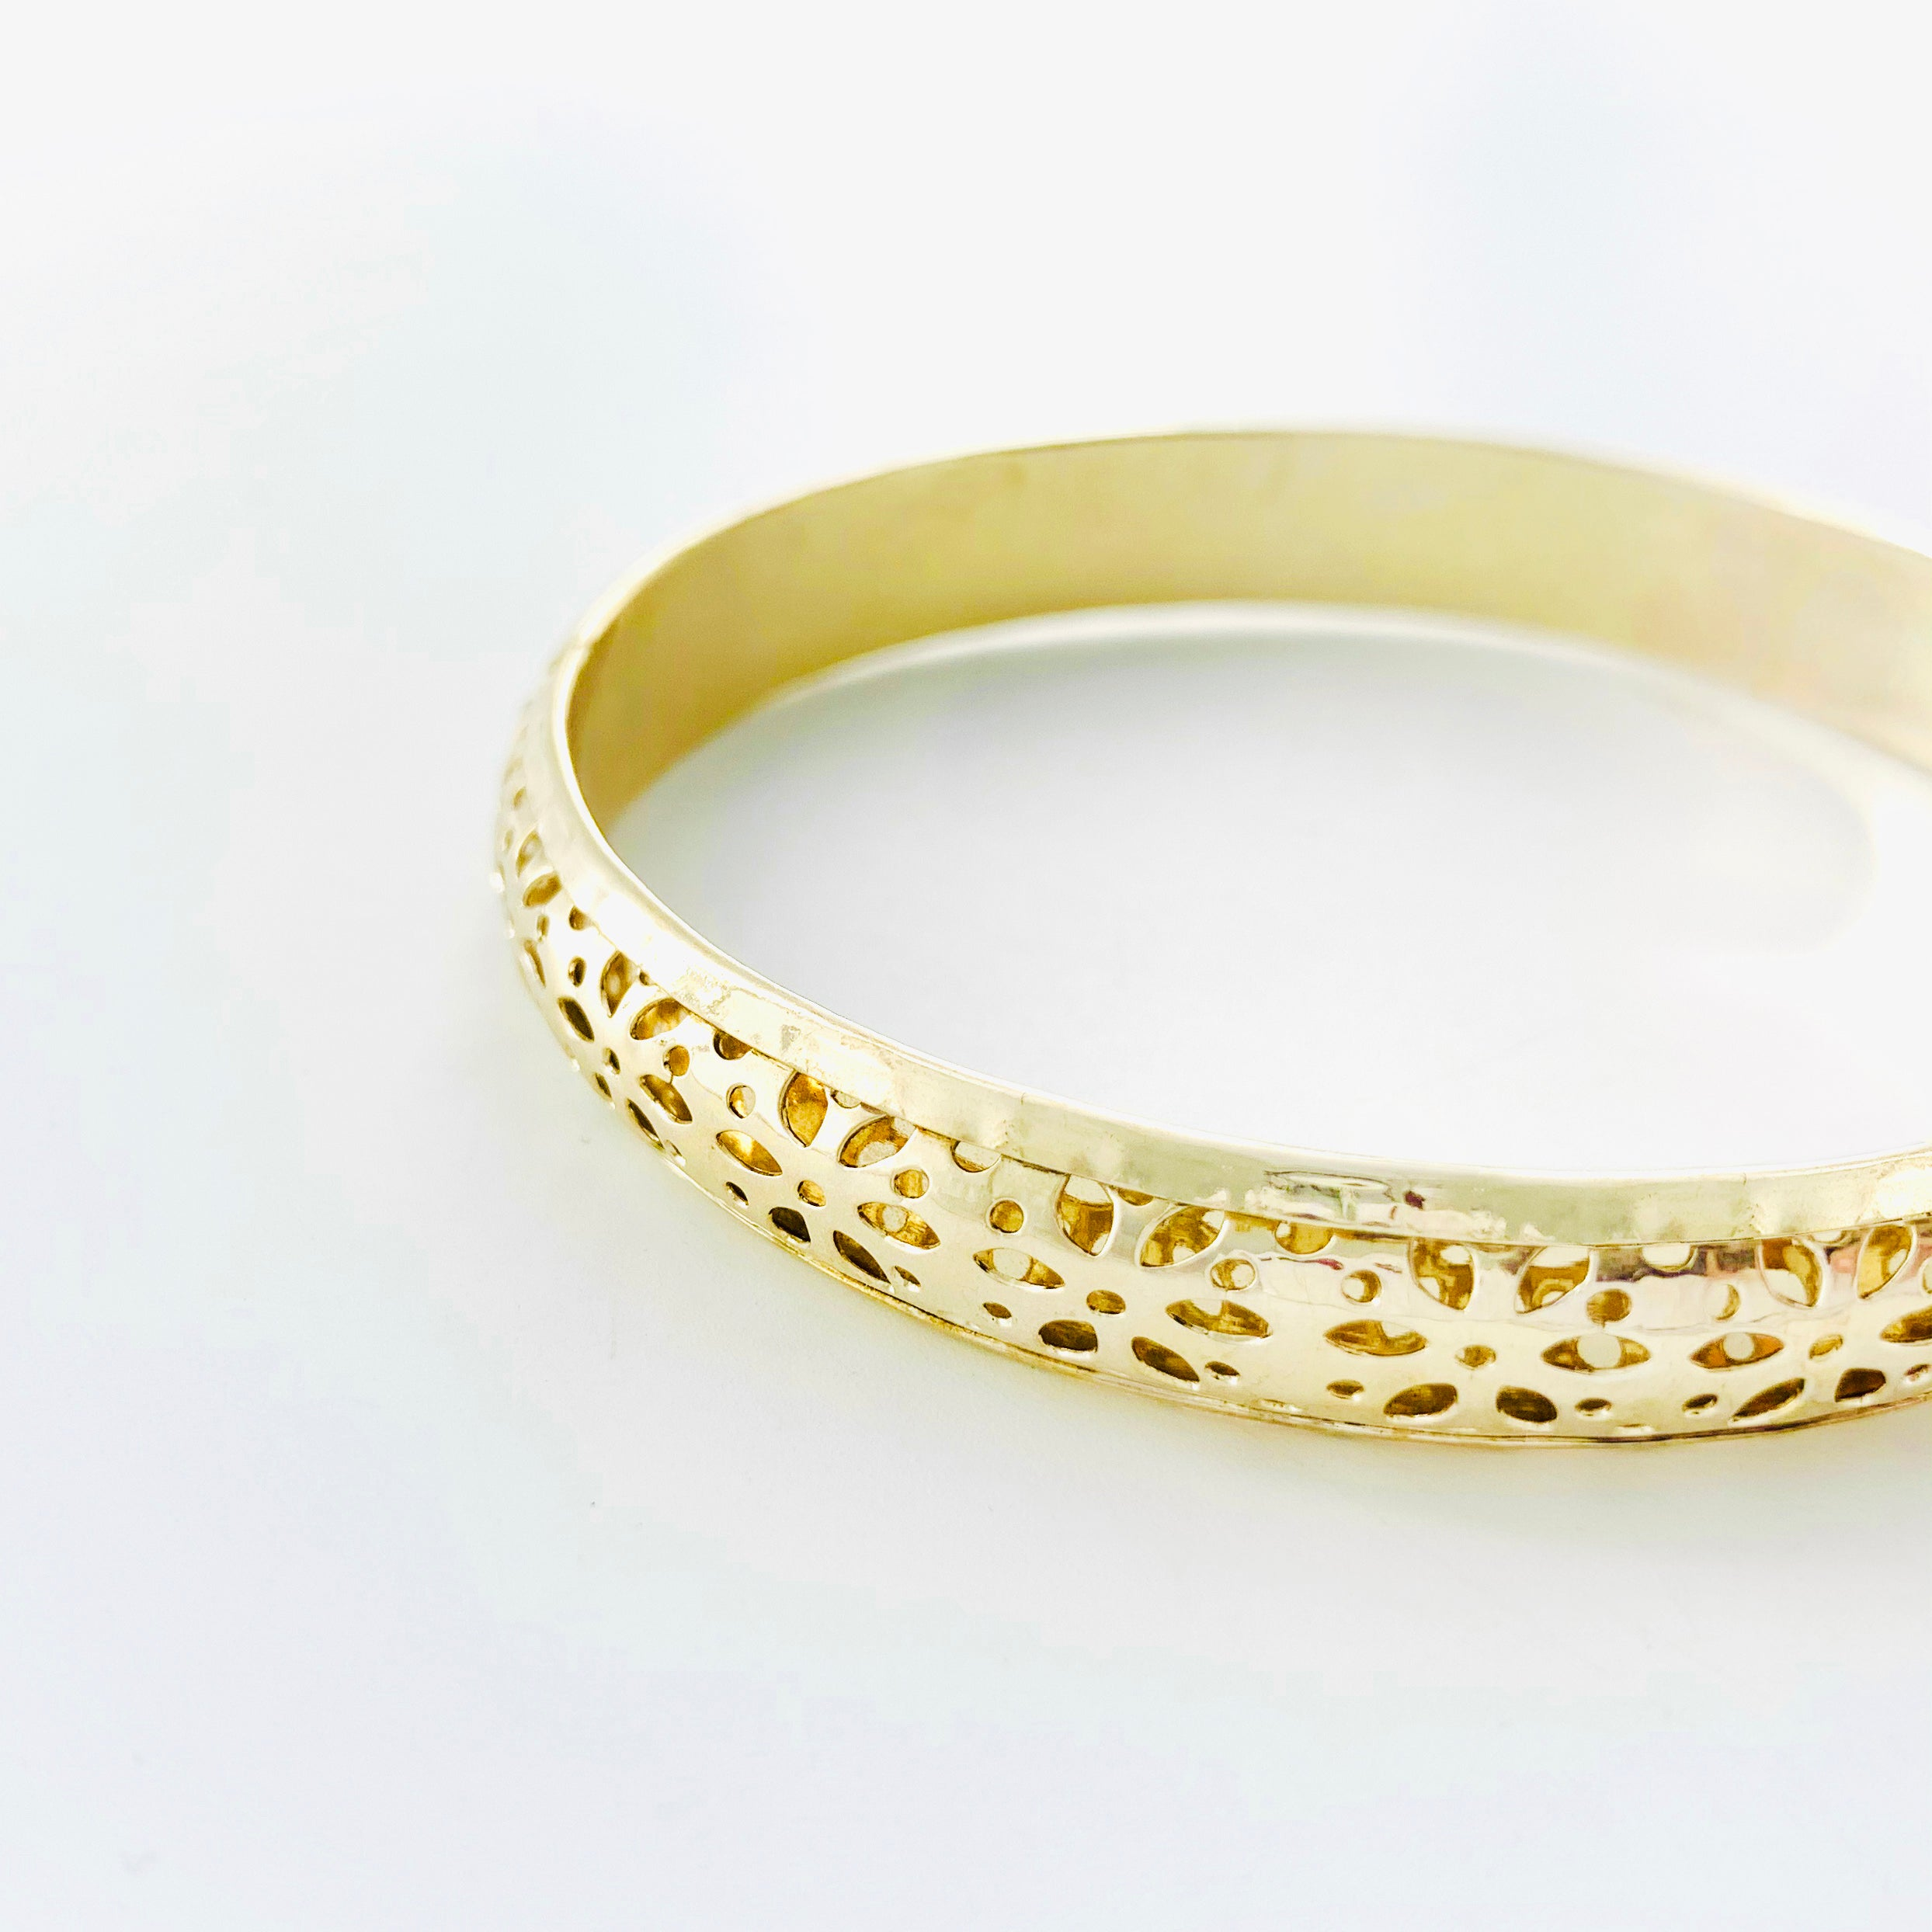 Gold bangle with floral cut-out patterns